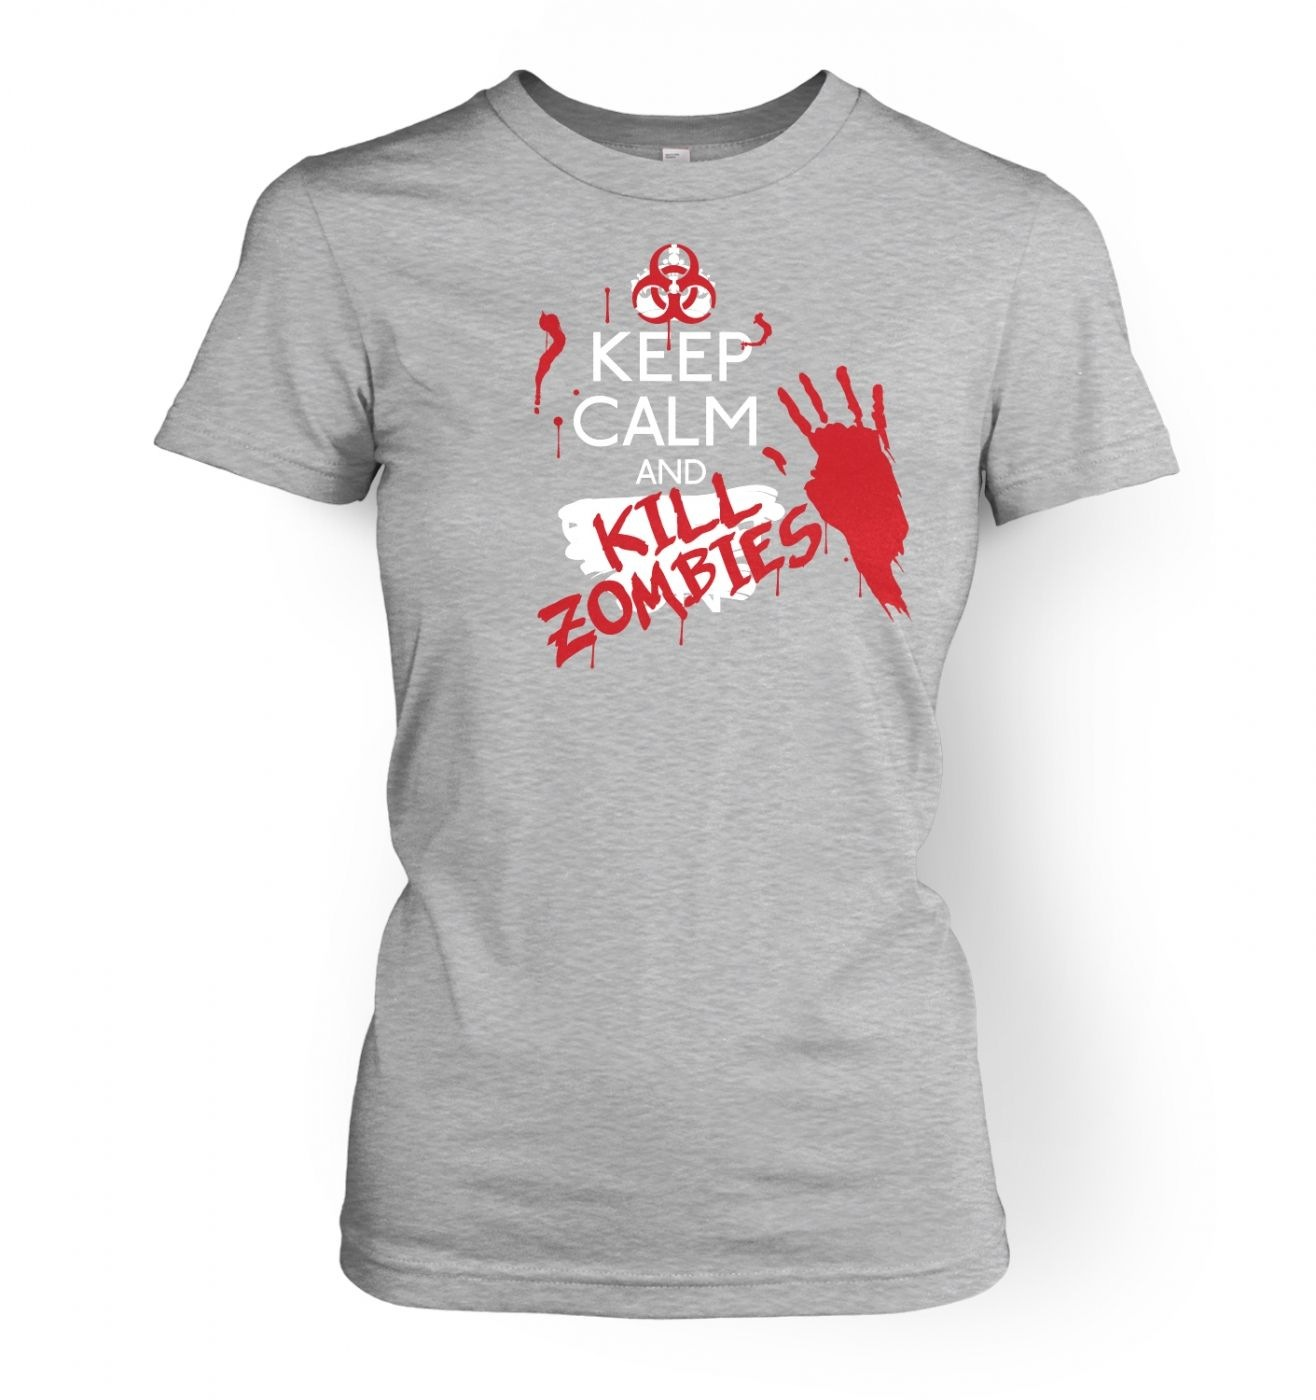 Keep Calm And Kill Zombies women's fitted t-shirt